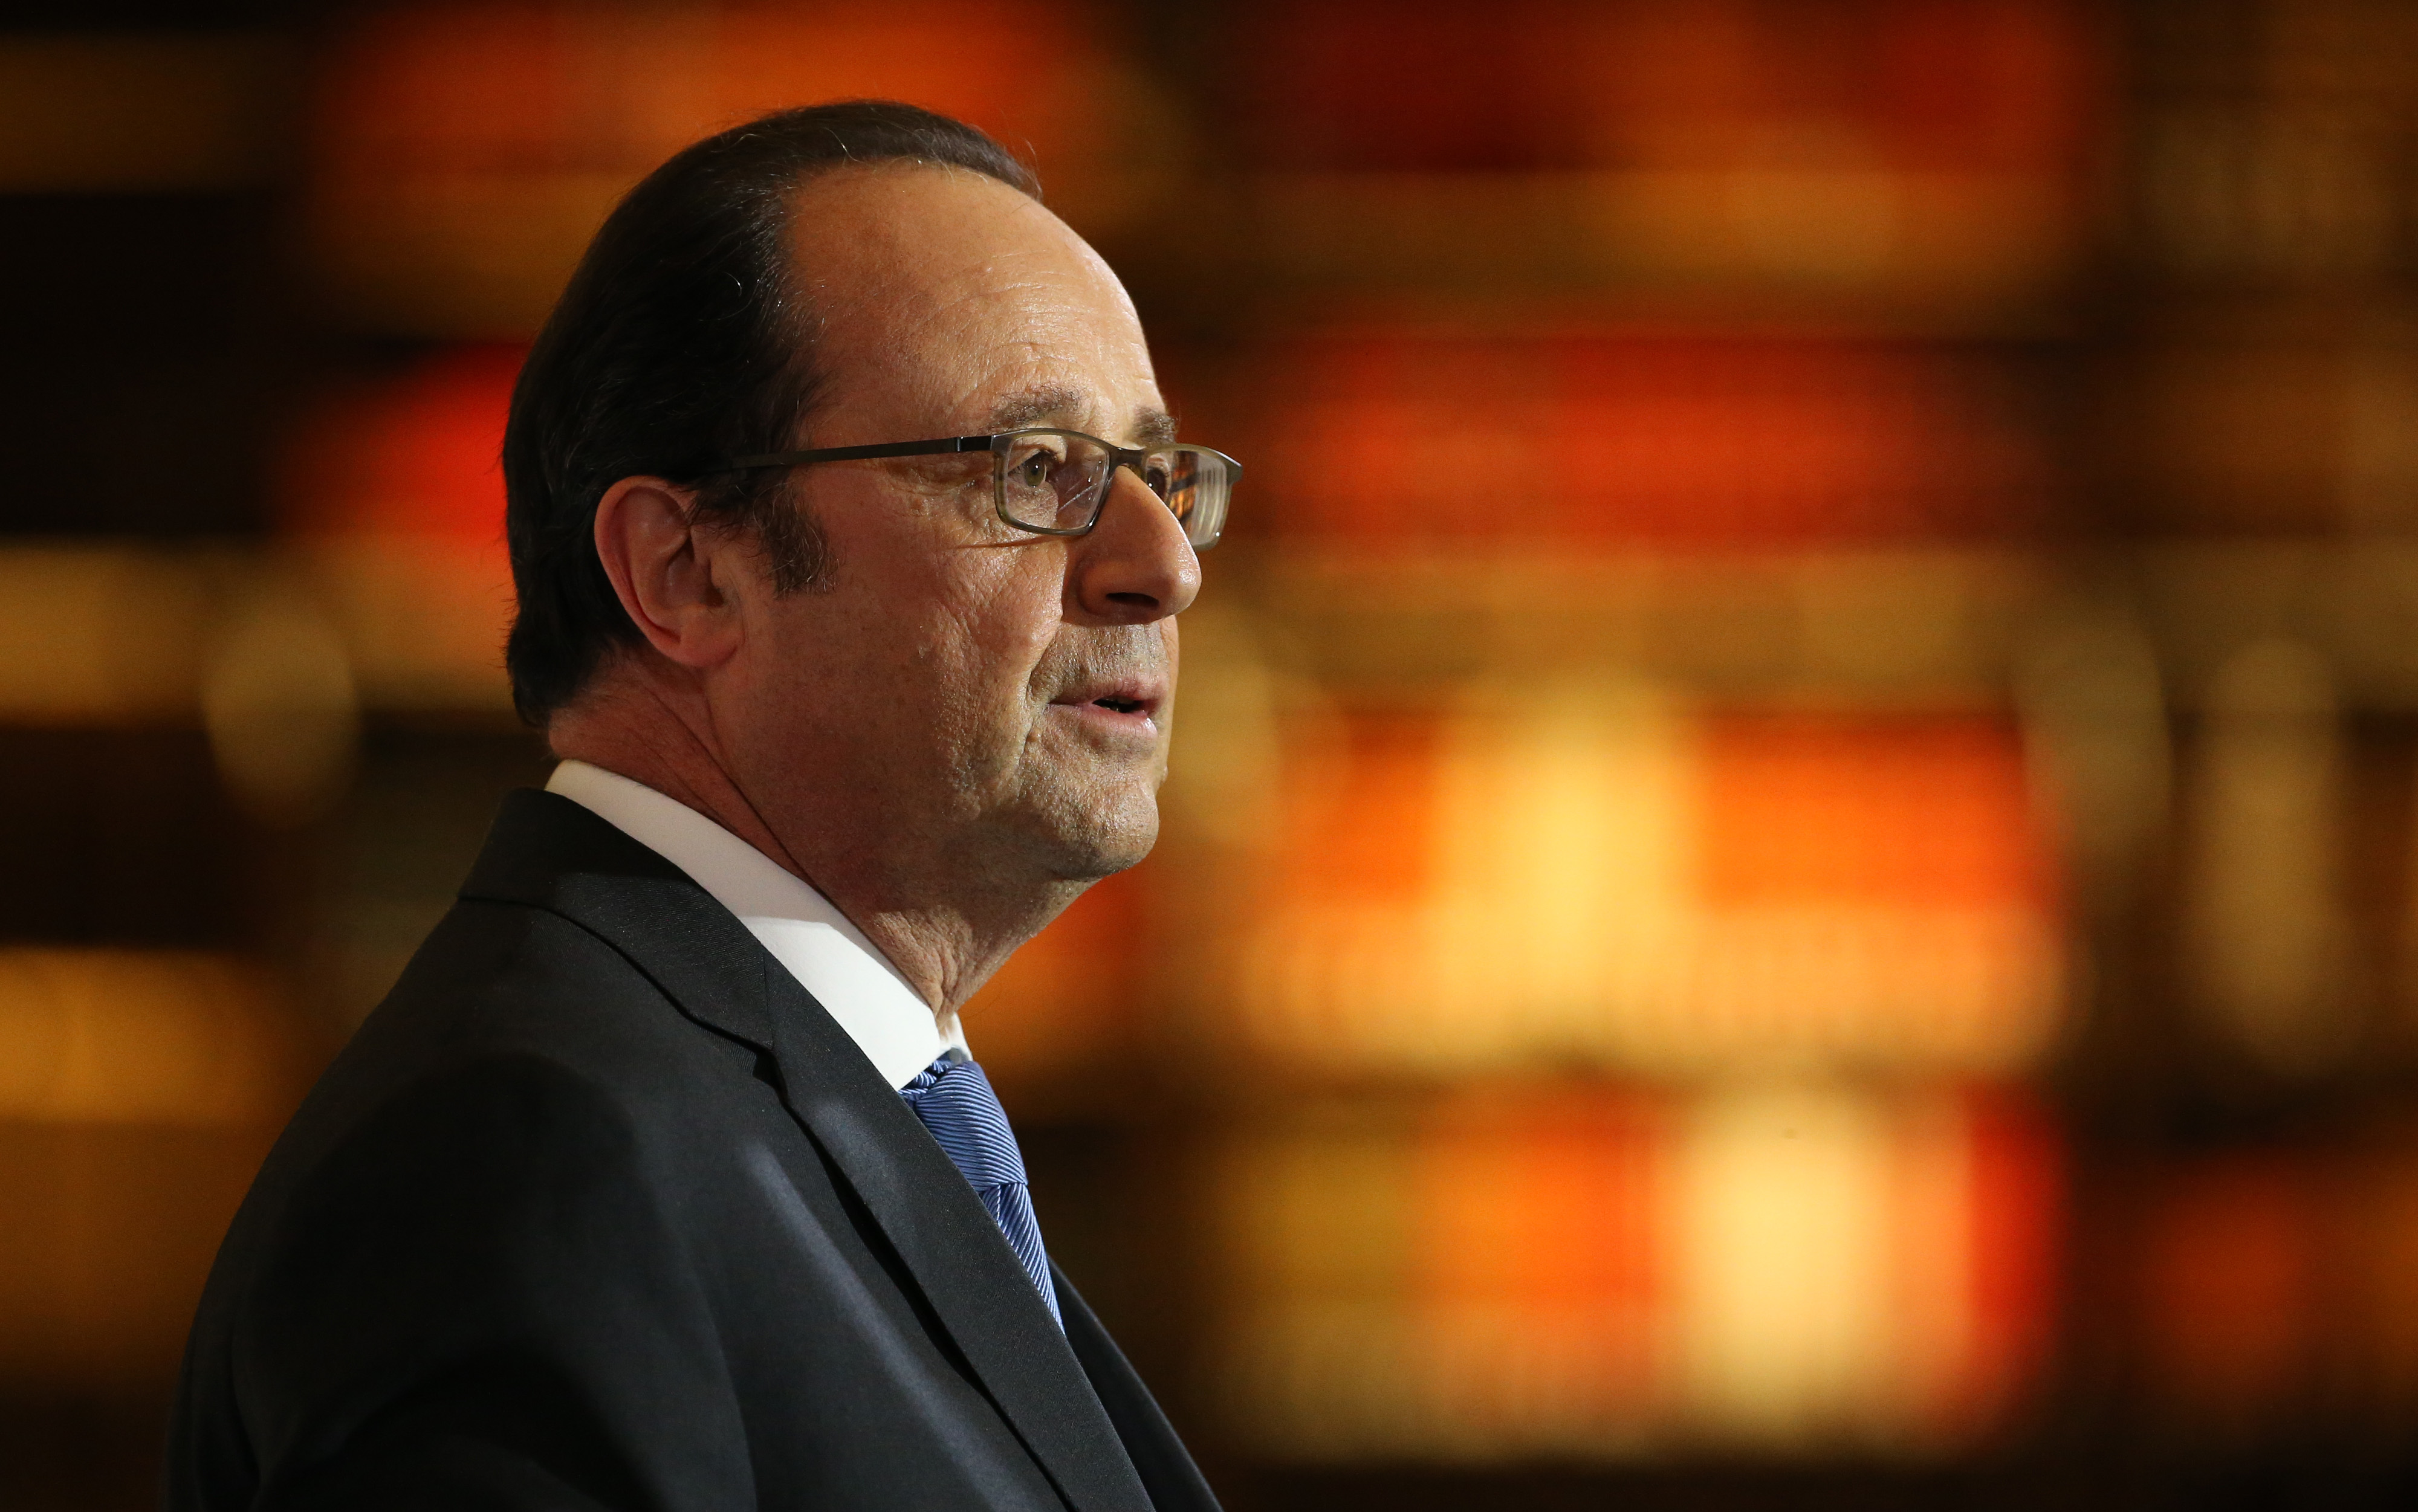 French President Francois Hollande gives a speech after visiting the renovated Bibliotheque nationale De France (BnF) at Salle Labrouste on rue de Richelieu site on January 11, 2017 in Paris, France.